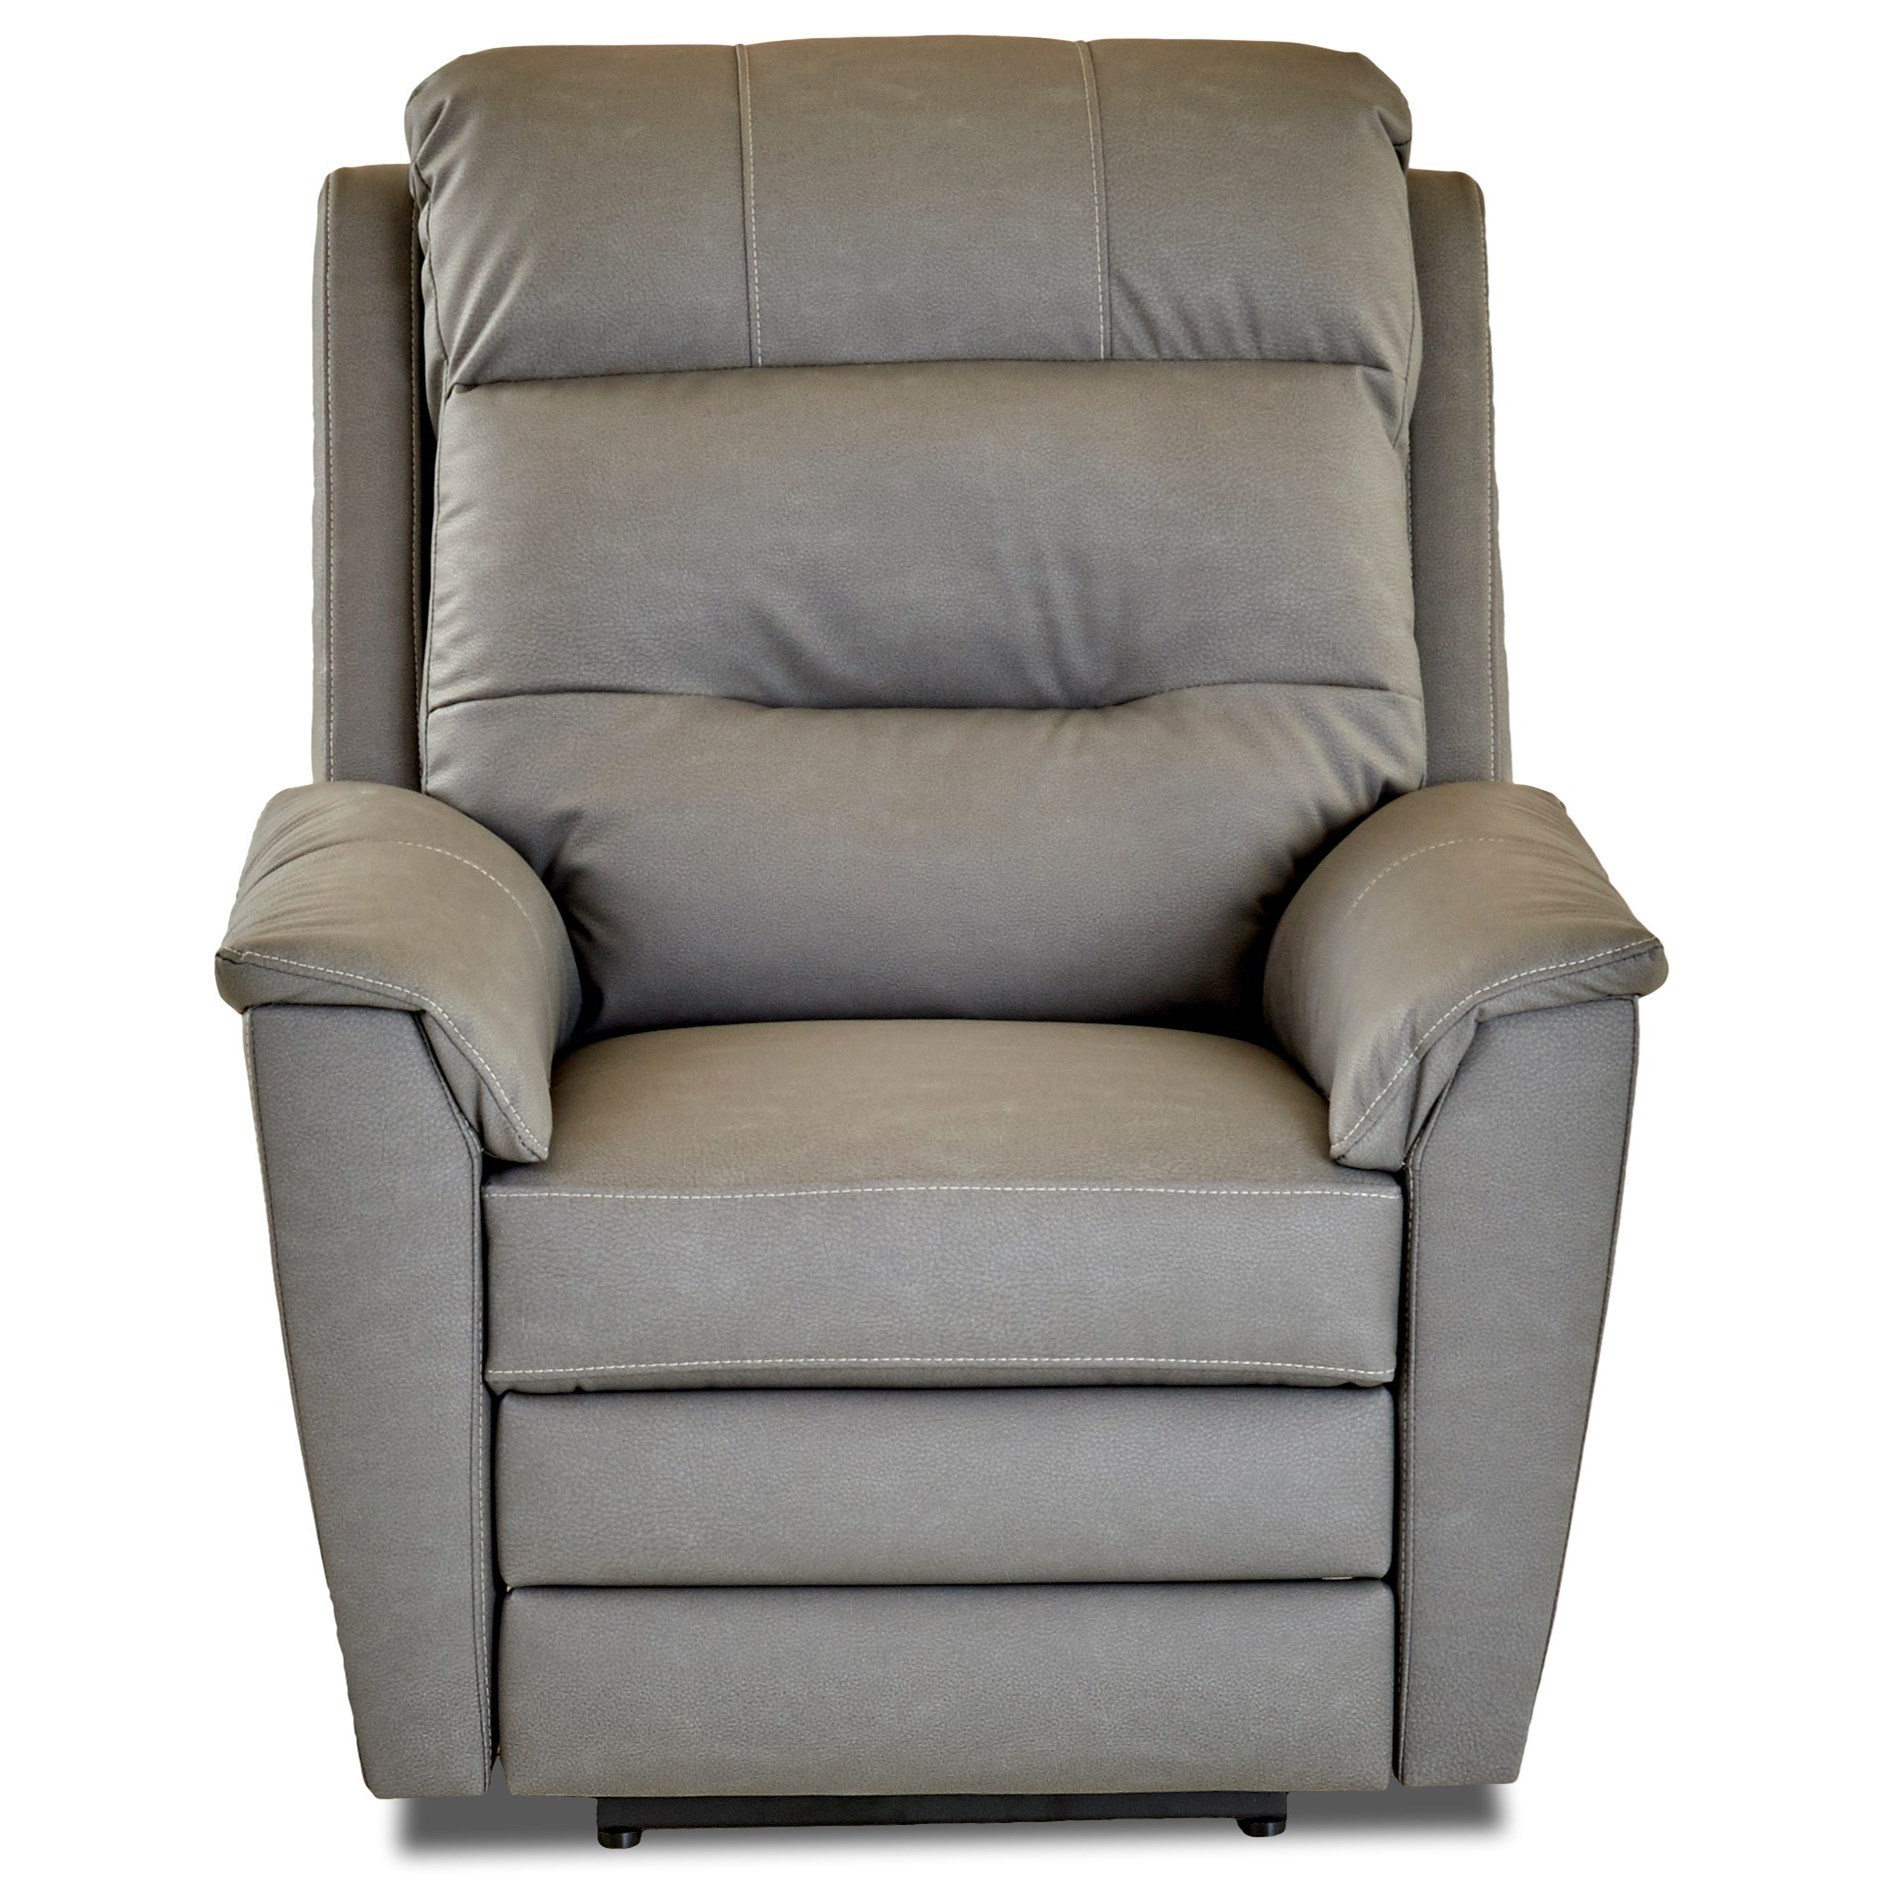 Klaussner Nola Power Rocking Recliner with Power Headrest - Item Number: 37343-6 PWRRC- Pompeii Lightgrey